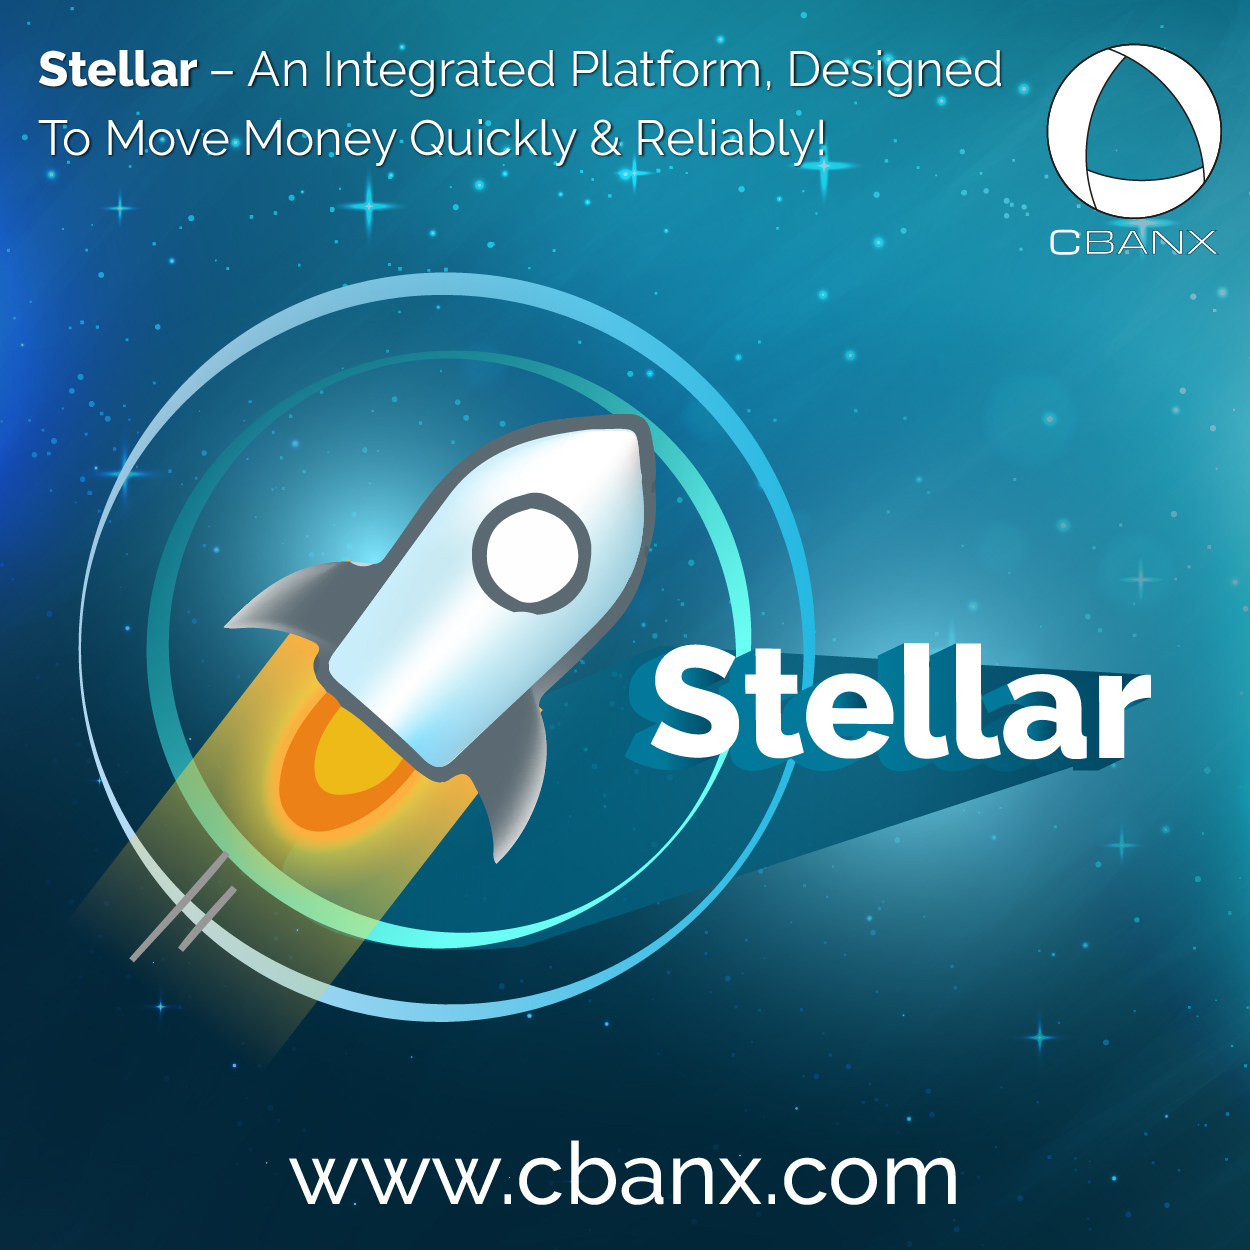 Stellar – An Integrated Platform, Designed To Move Money Quickly & Reliably!